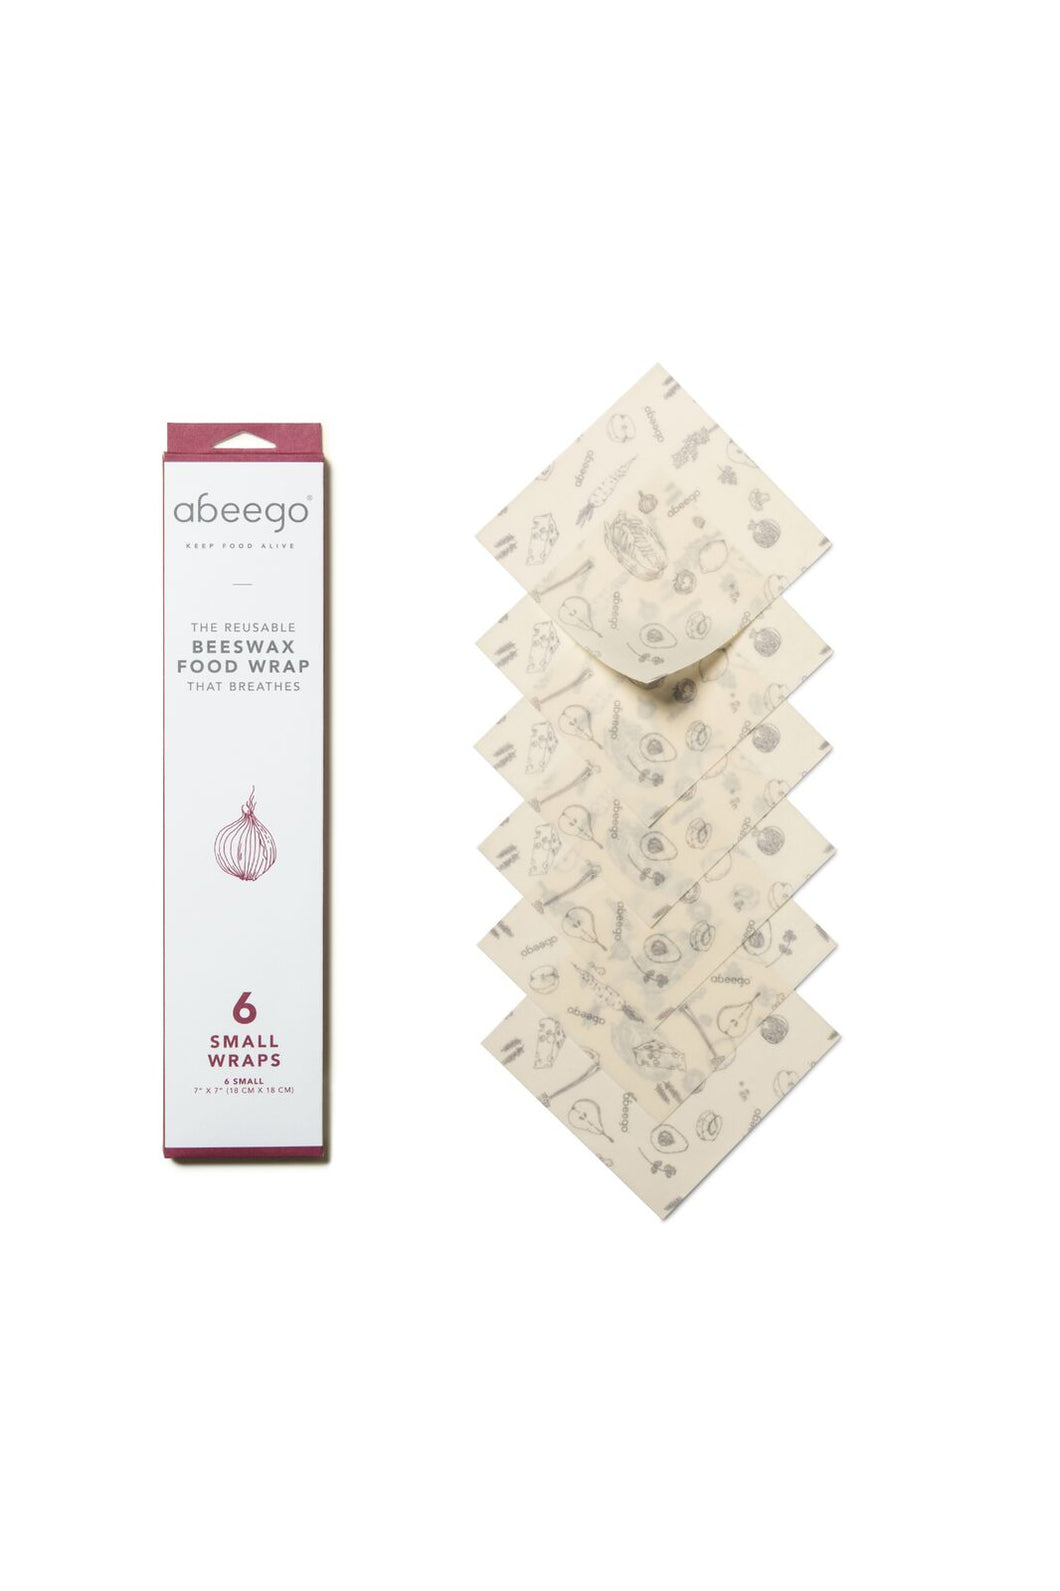 Abeego Beeswax Food Wrap - 6 Small